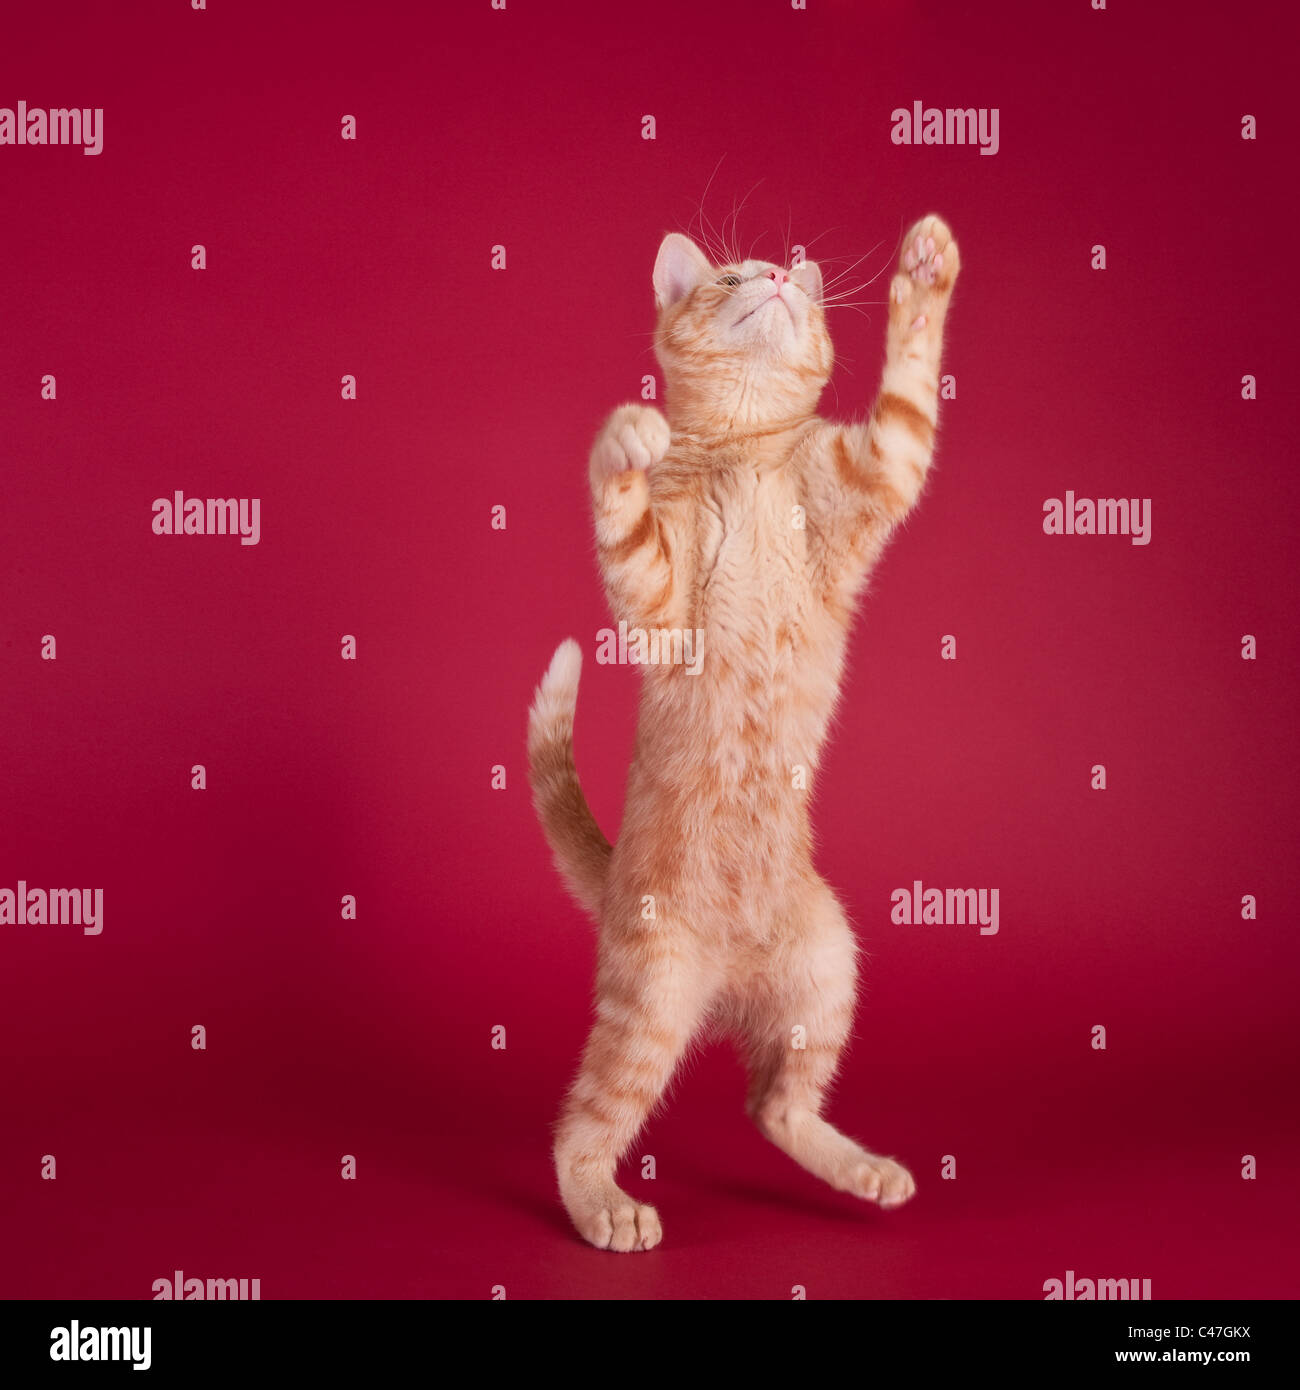 Studio portrait of a kitten standing on hind legs and reaching with front paws on a red background - Stock Image